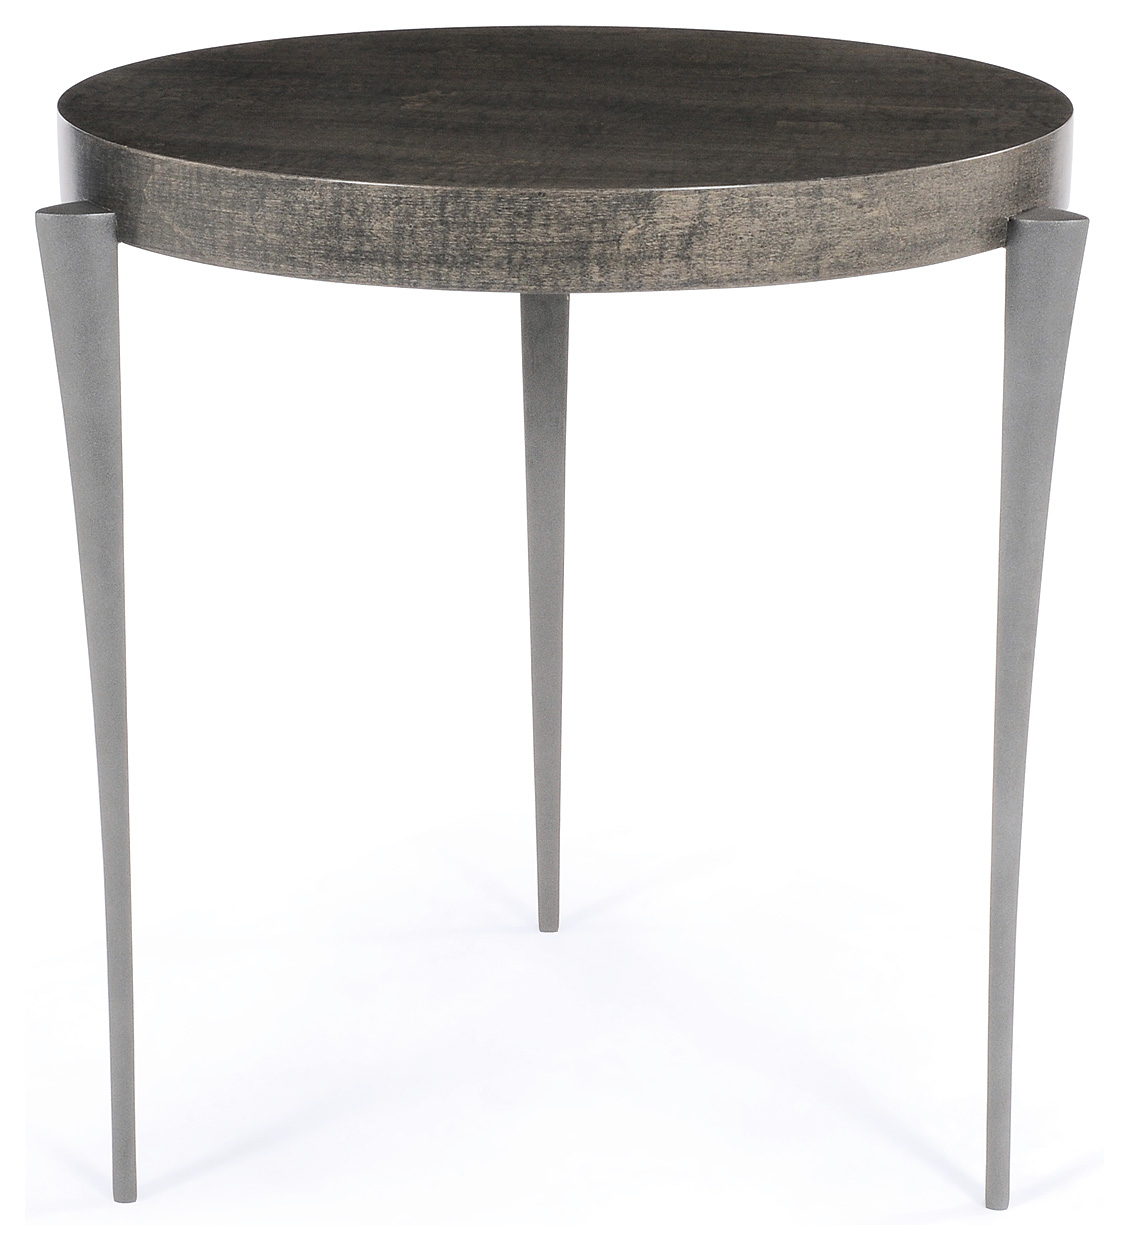 Textured pewter with grey maple top  500mm dia x 600mm h. Juno Side Table  Side Tables  Furniture  Decorus Furniture